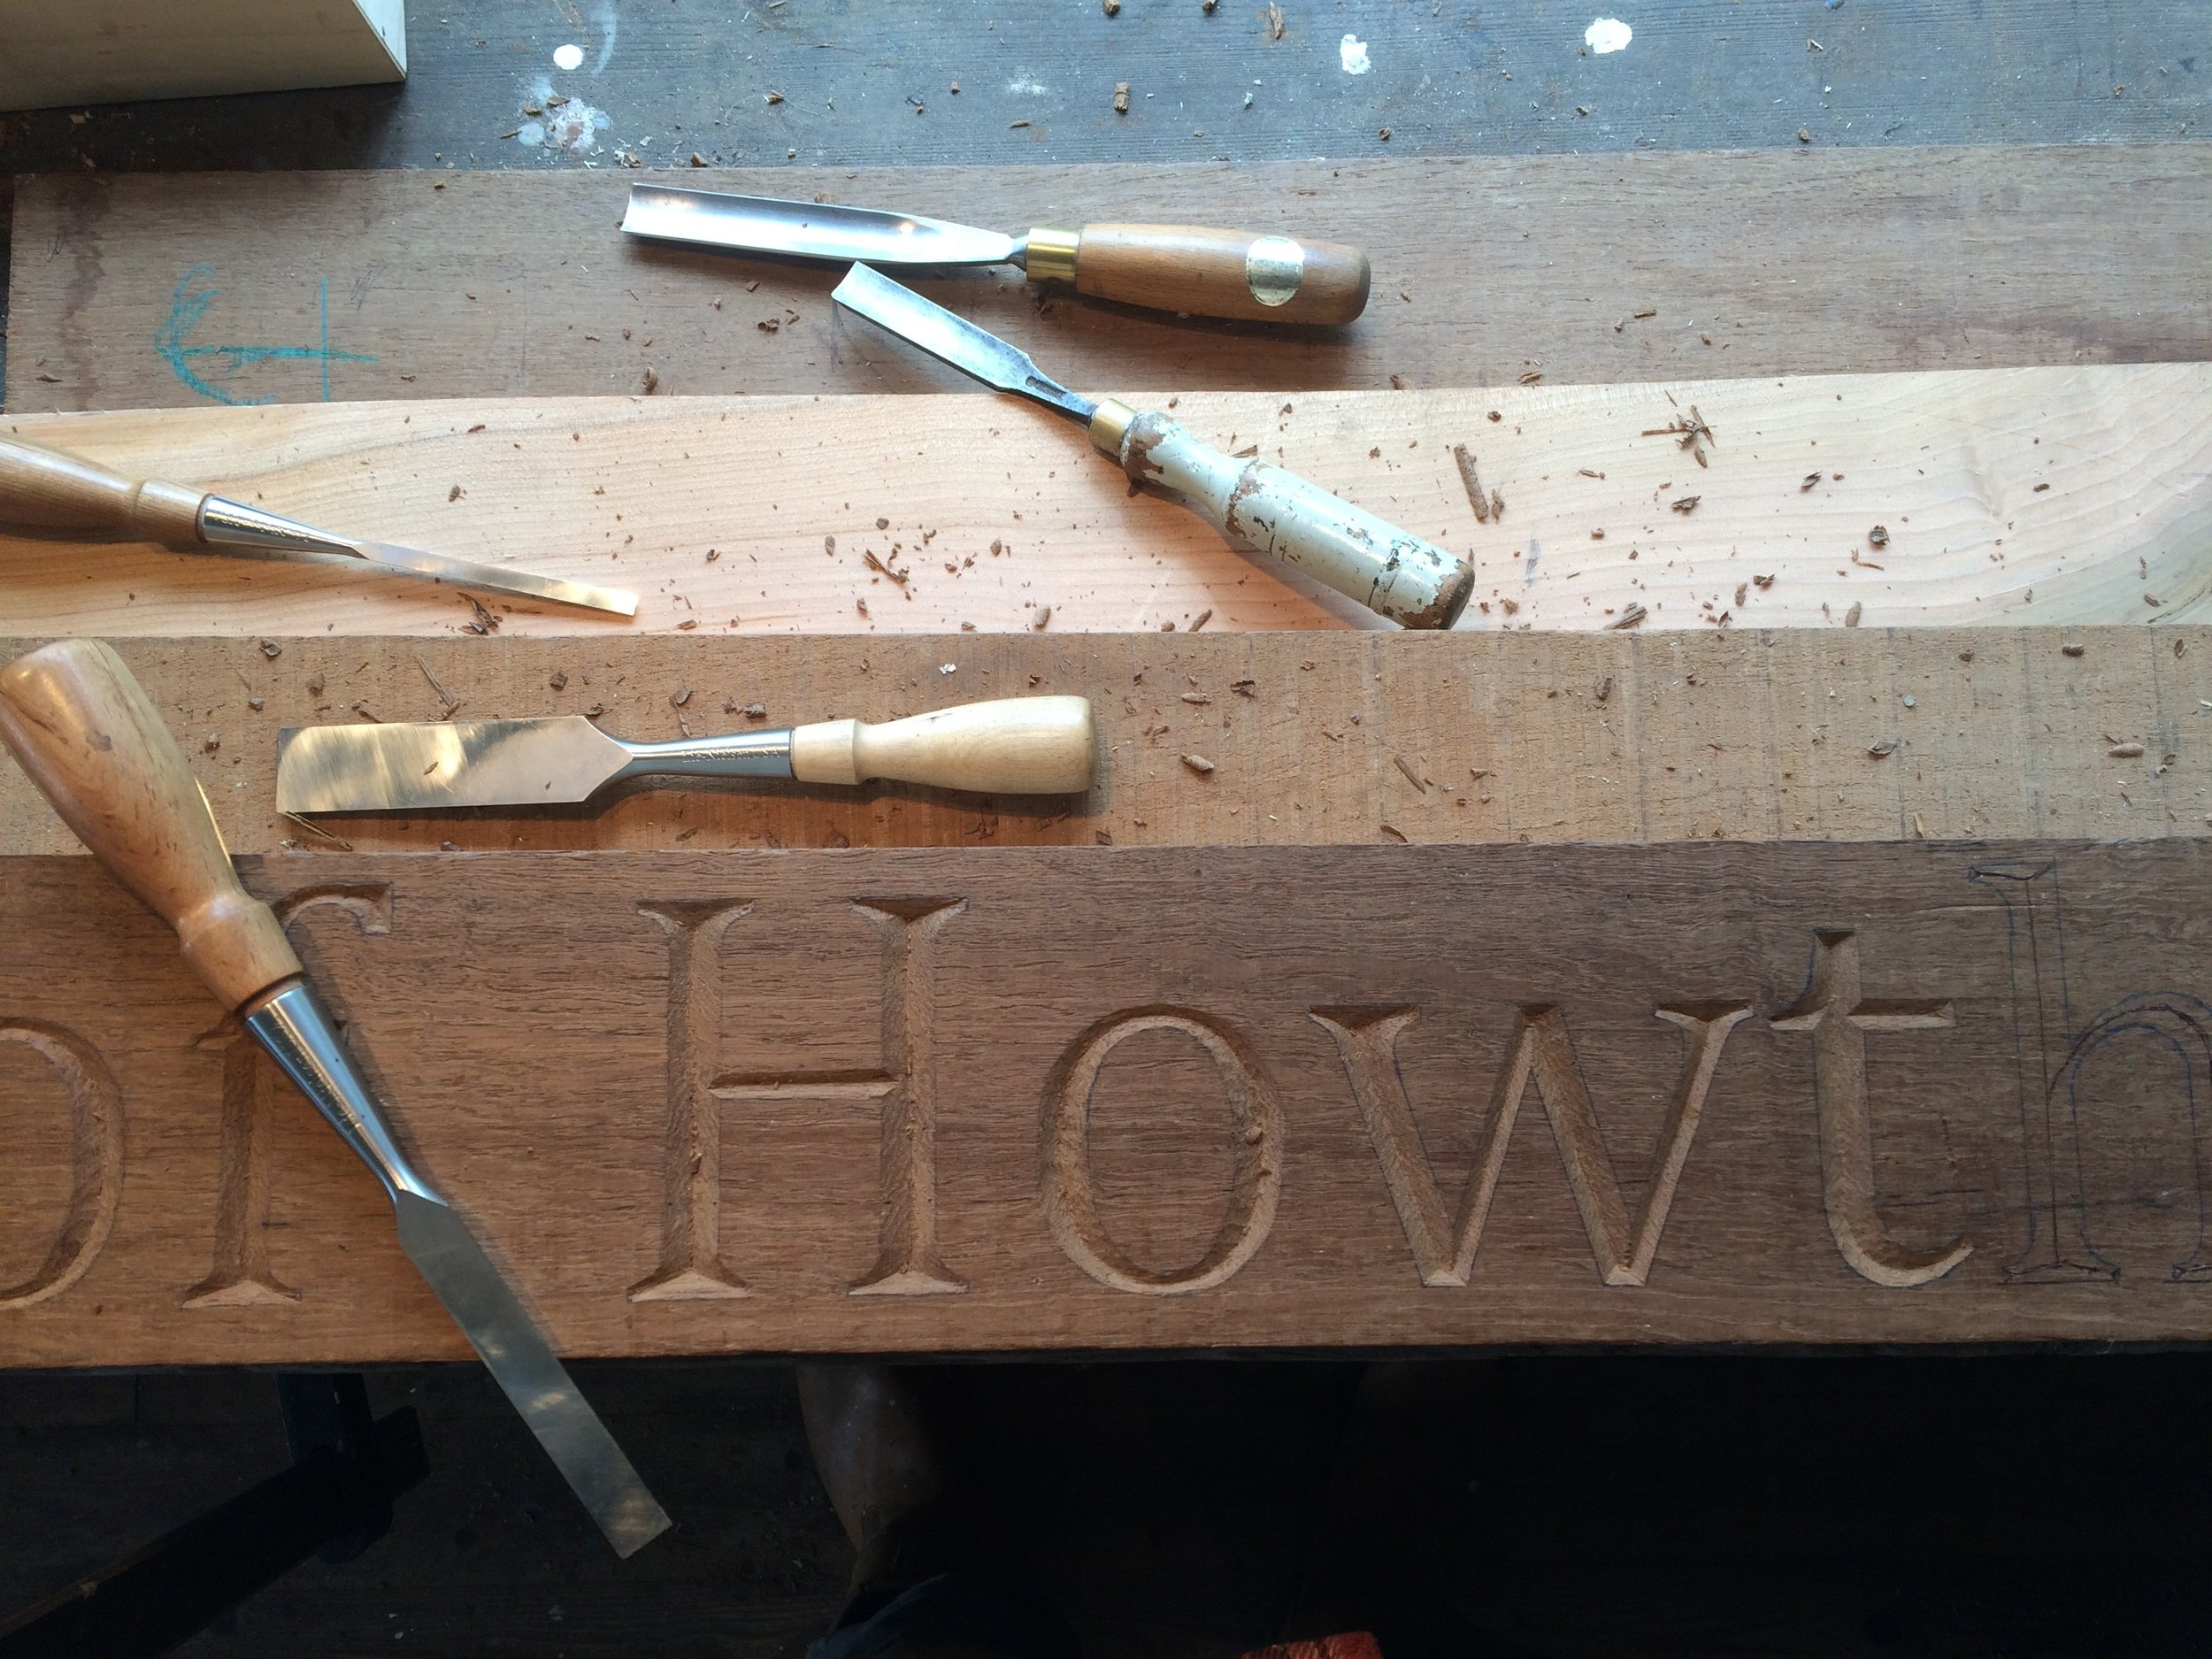 Letter Carving Short Course